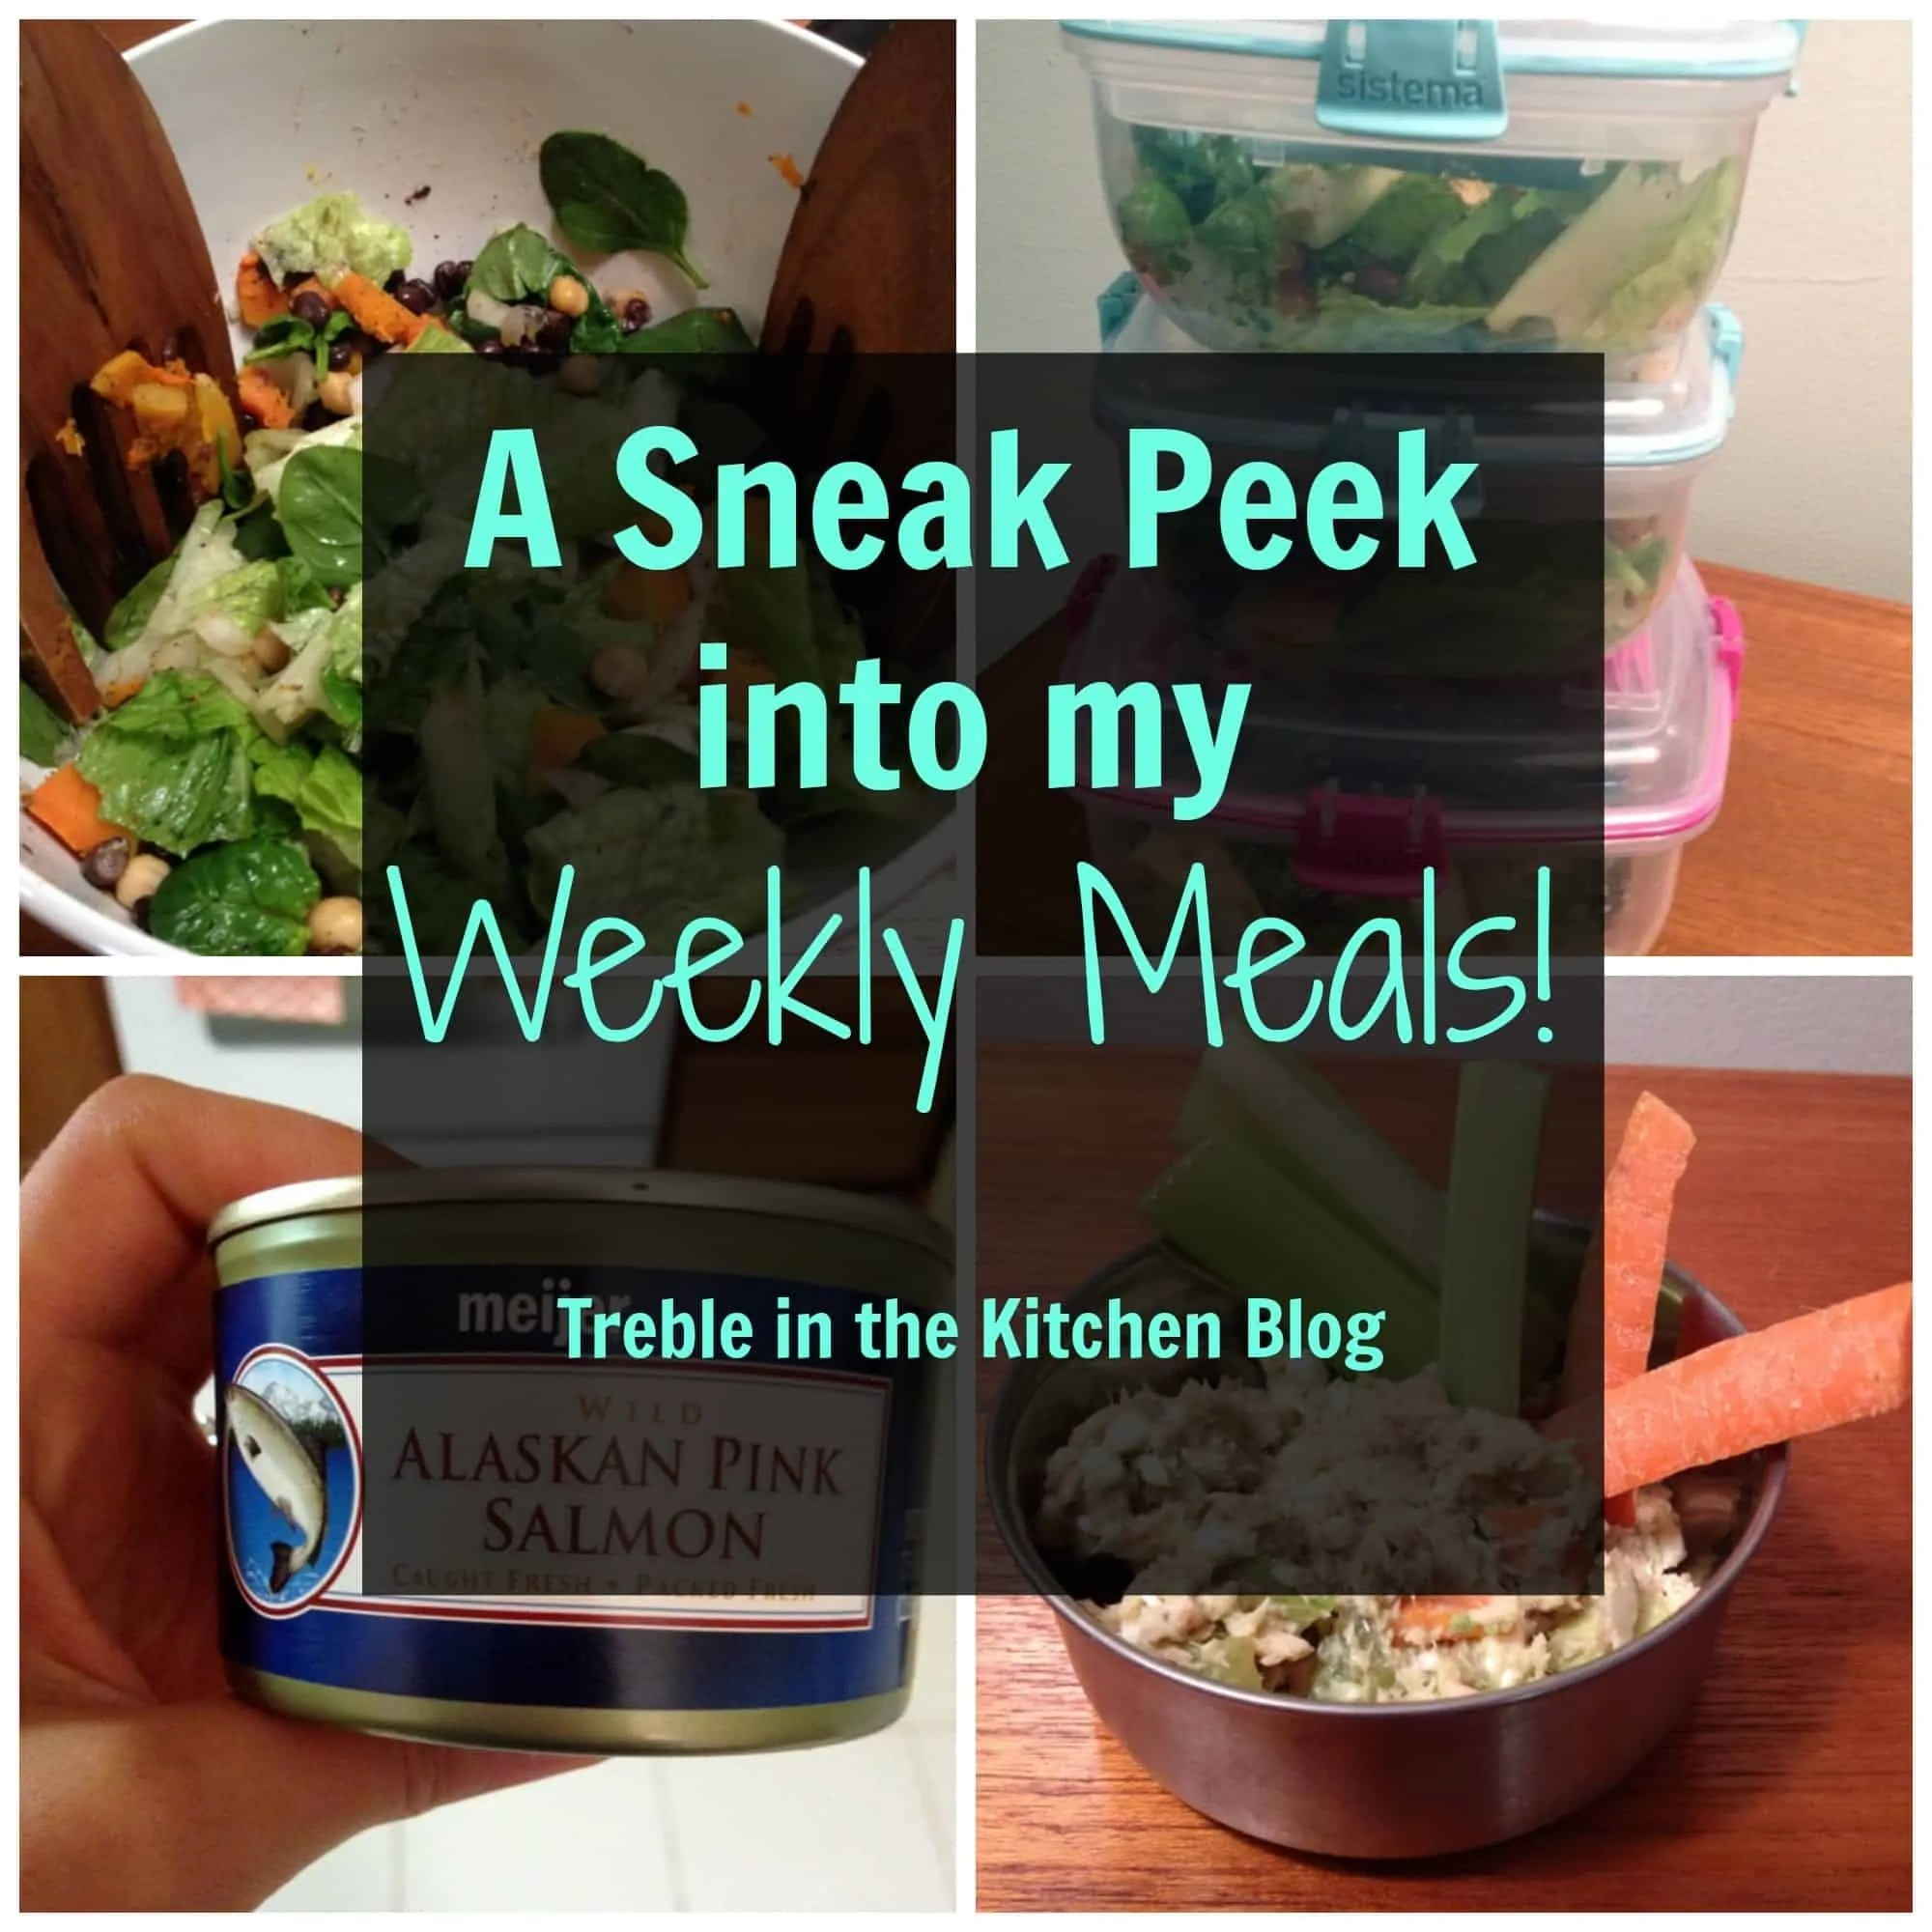 Sneak Peek into Weekly Meals via Treble in the Kitchen